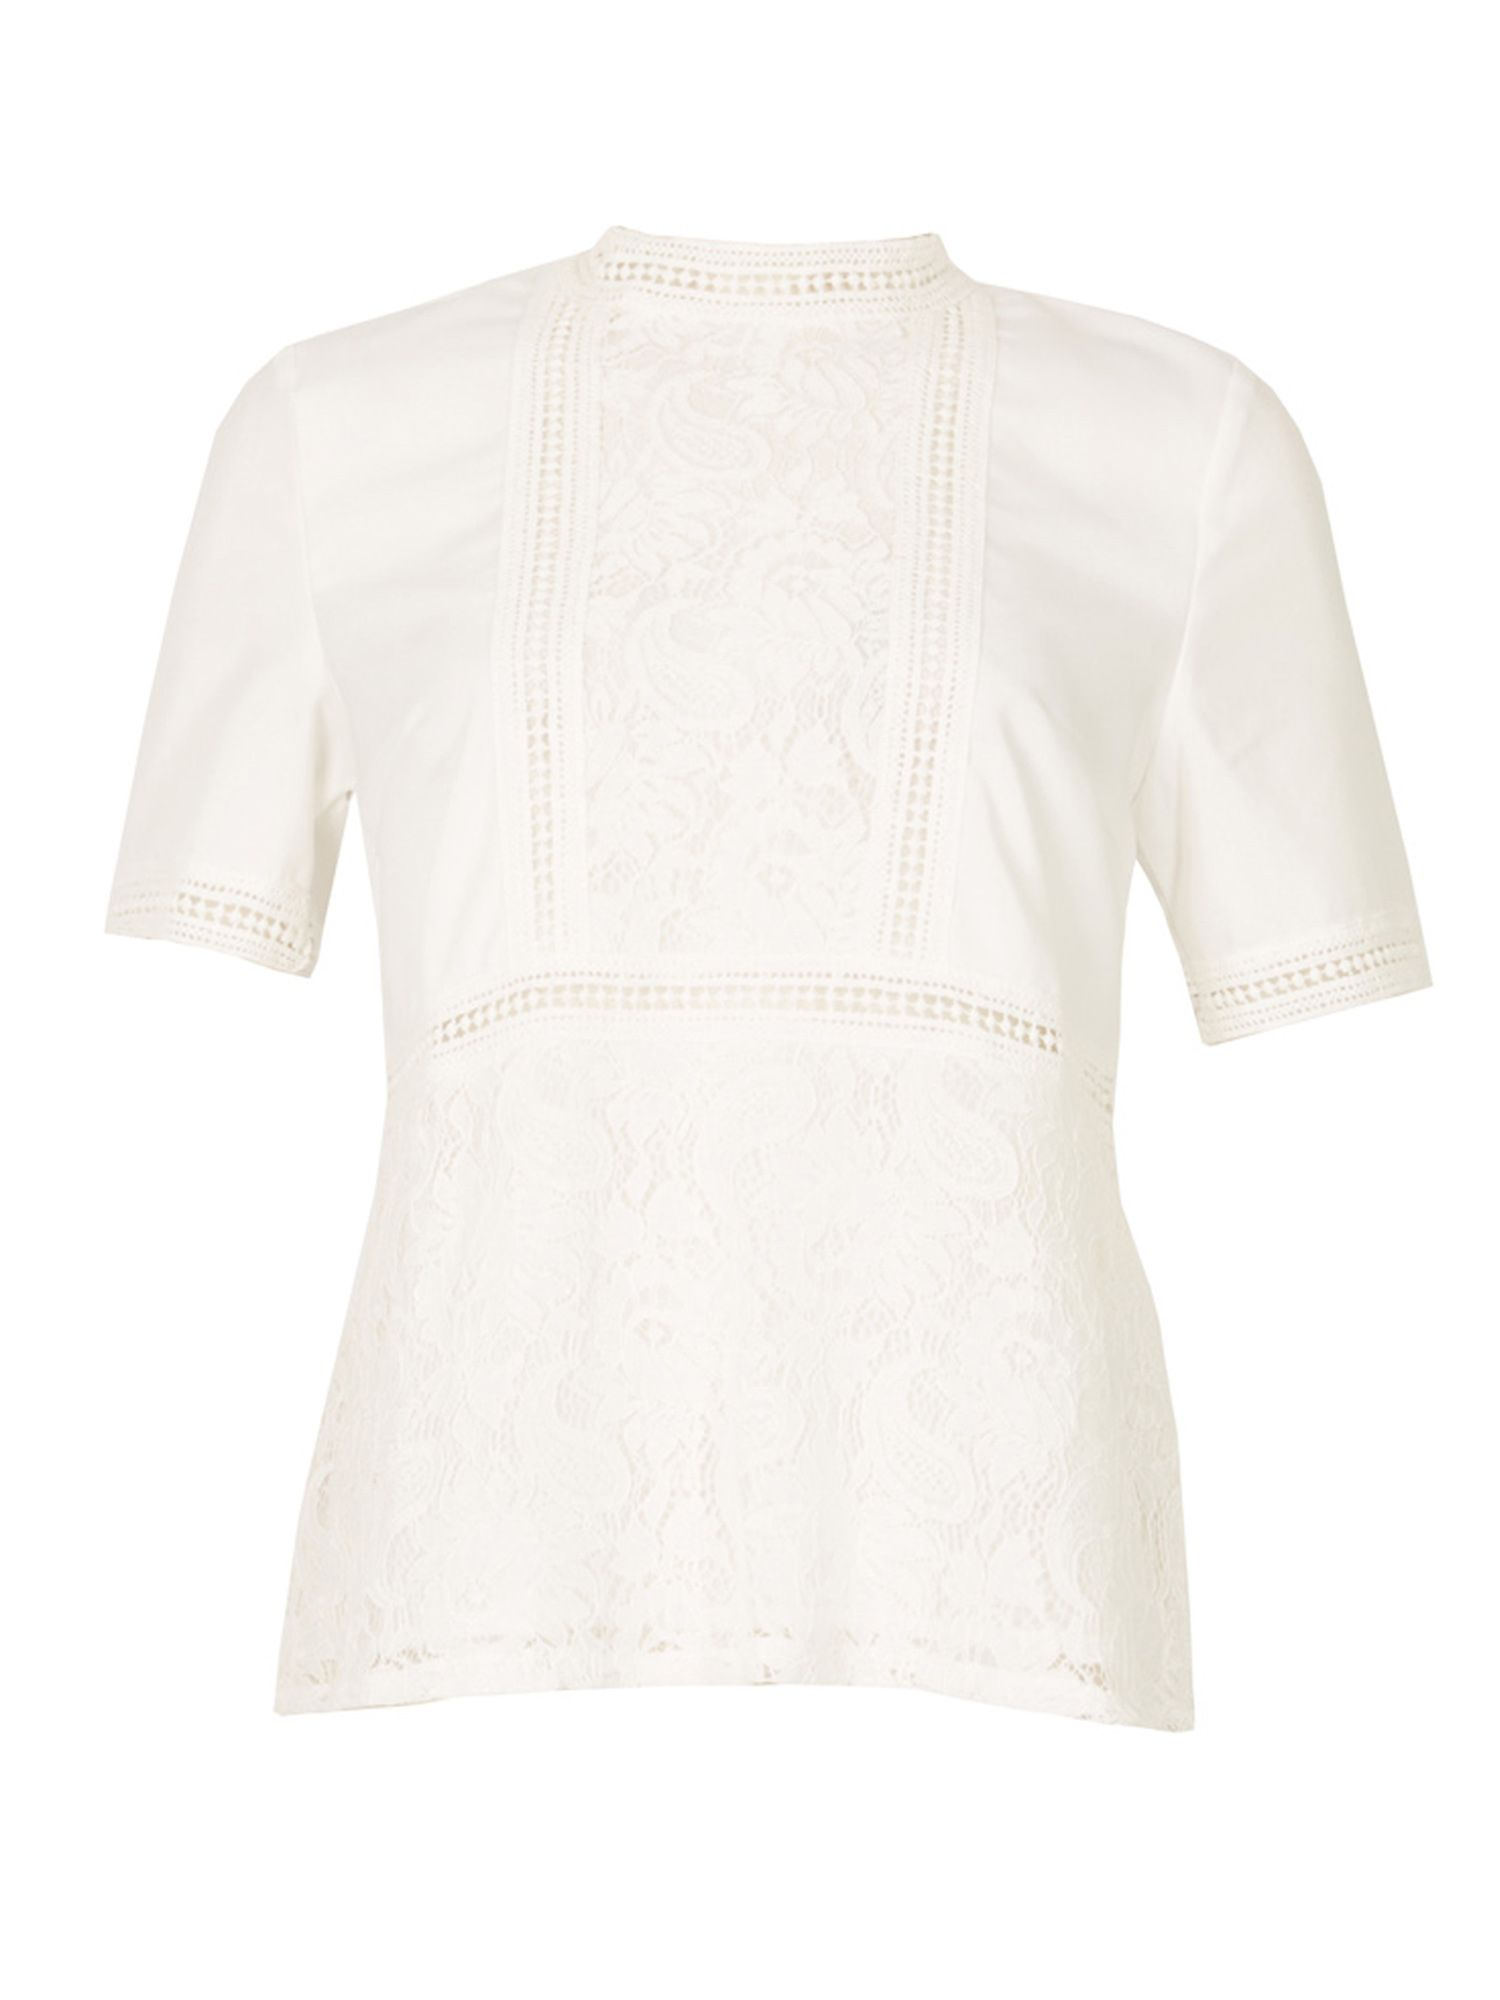 MISSTRUTH Short Sleeve Lace Detail Top, White